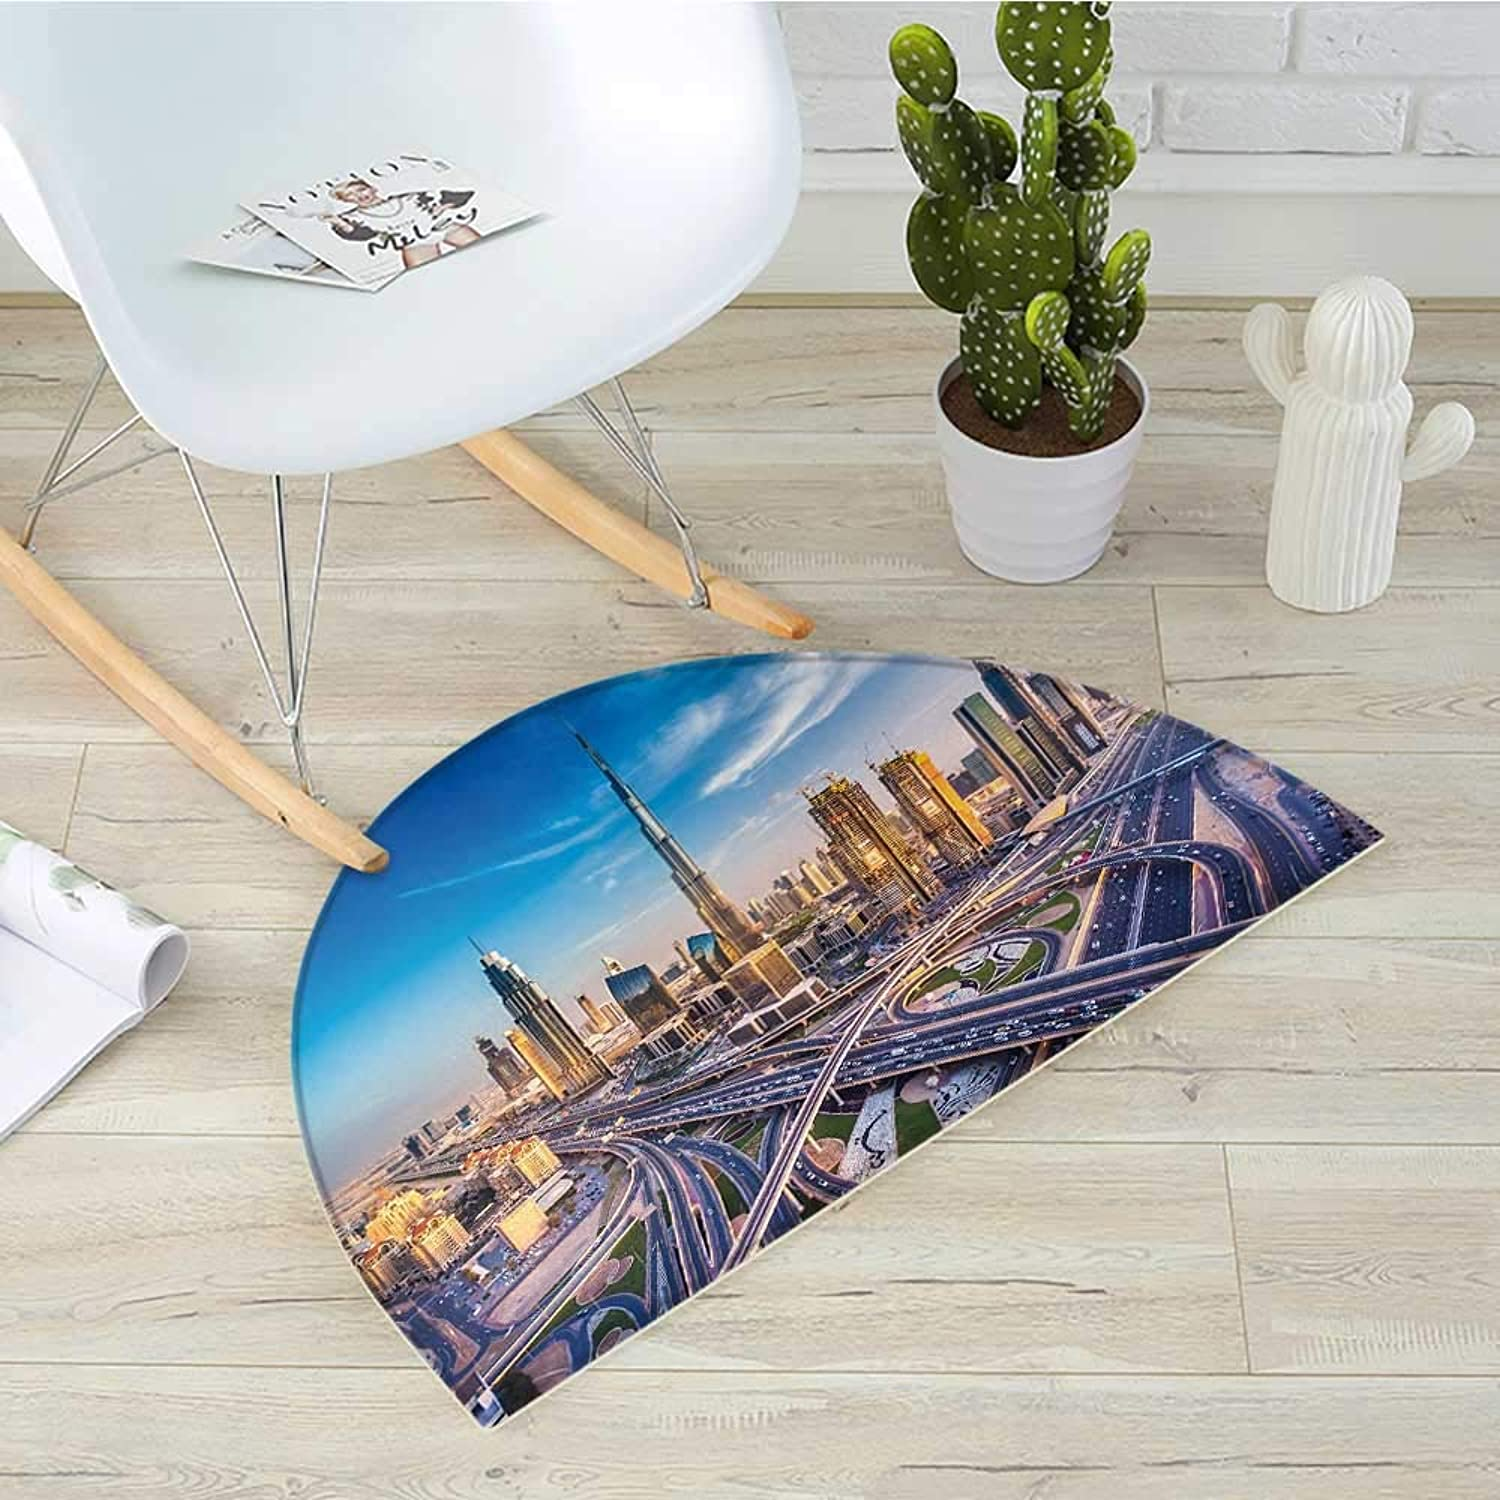 City Semicircle Doormat Panoramic View of Dubai Arabian Cityscape High Rise Buildings Traffic Roads Halfmoon doormats H 31.5  xD 47.2  bluee Ivory Marigold